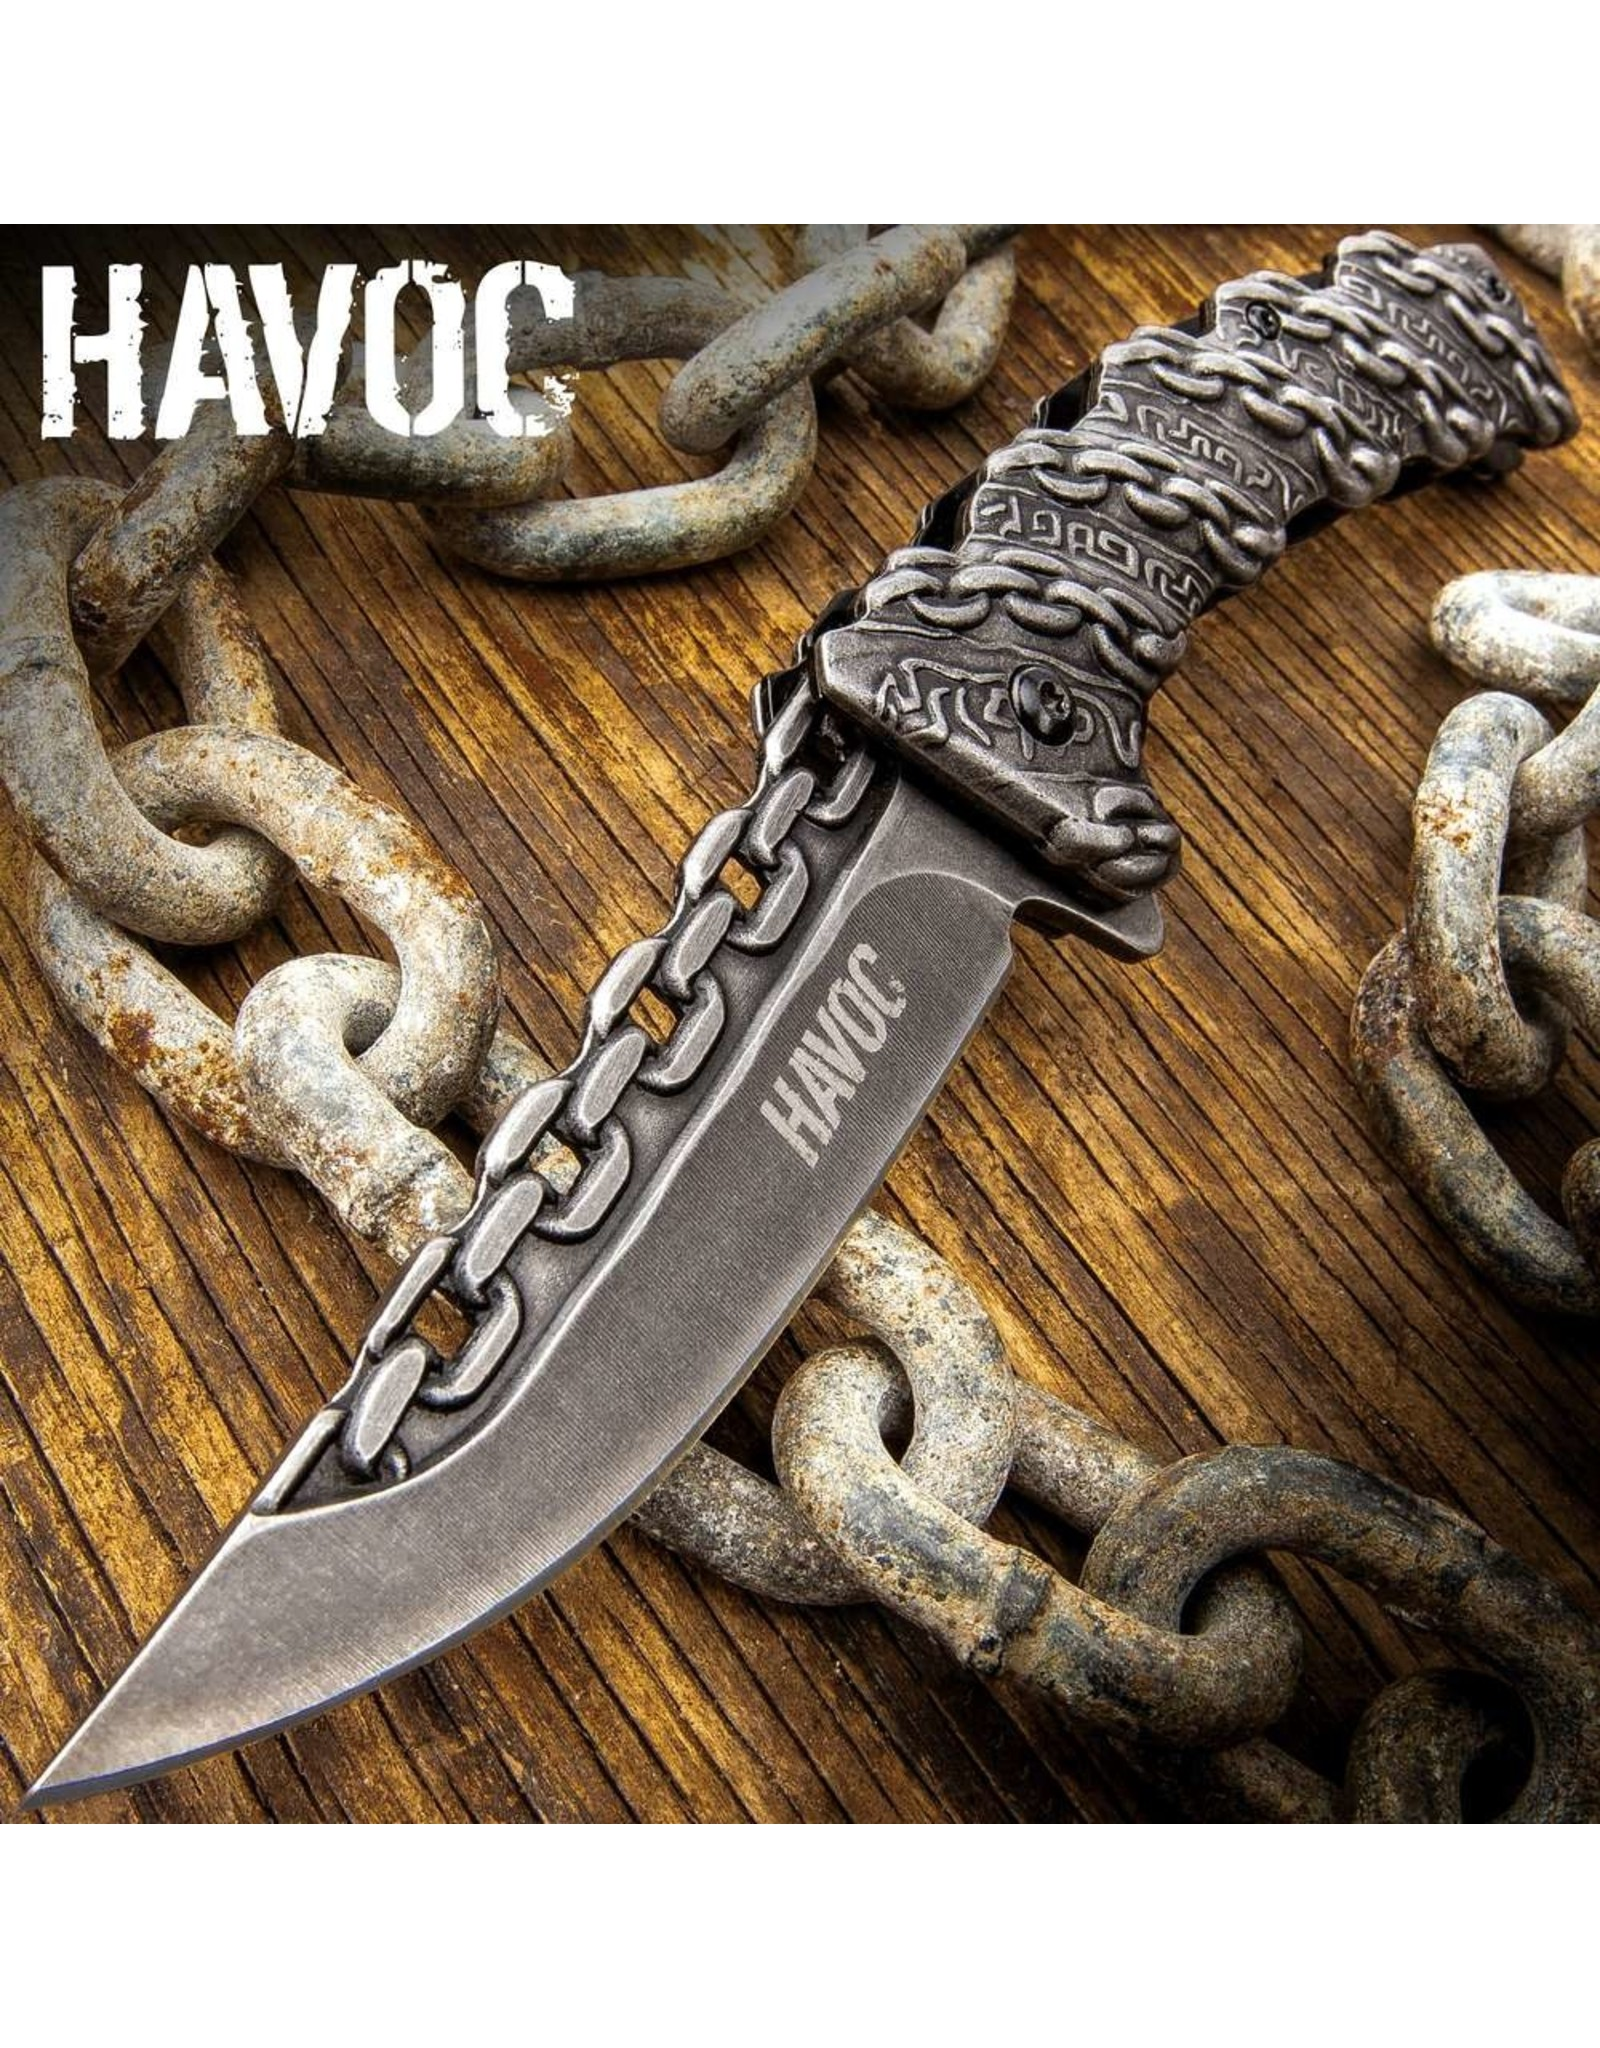 Havoc Chain Link Assisted Opening Pocket Knife